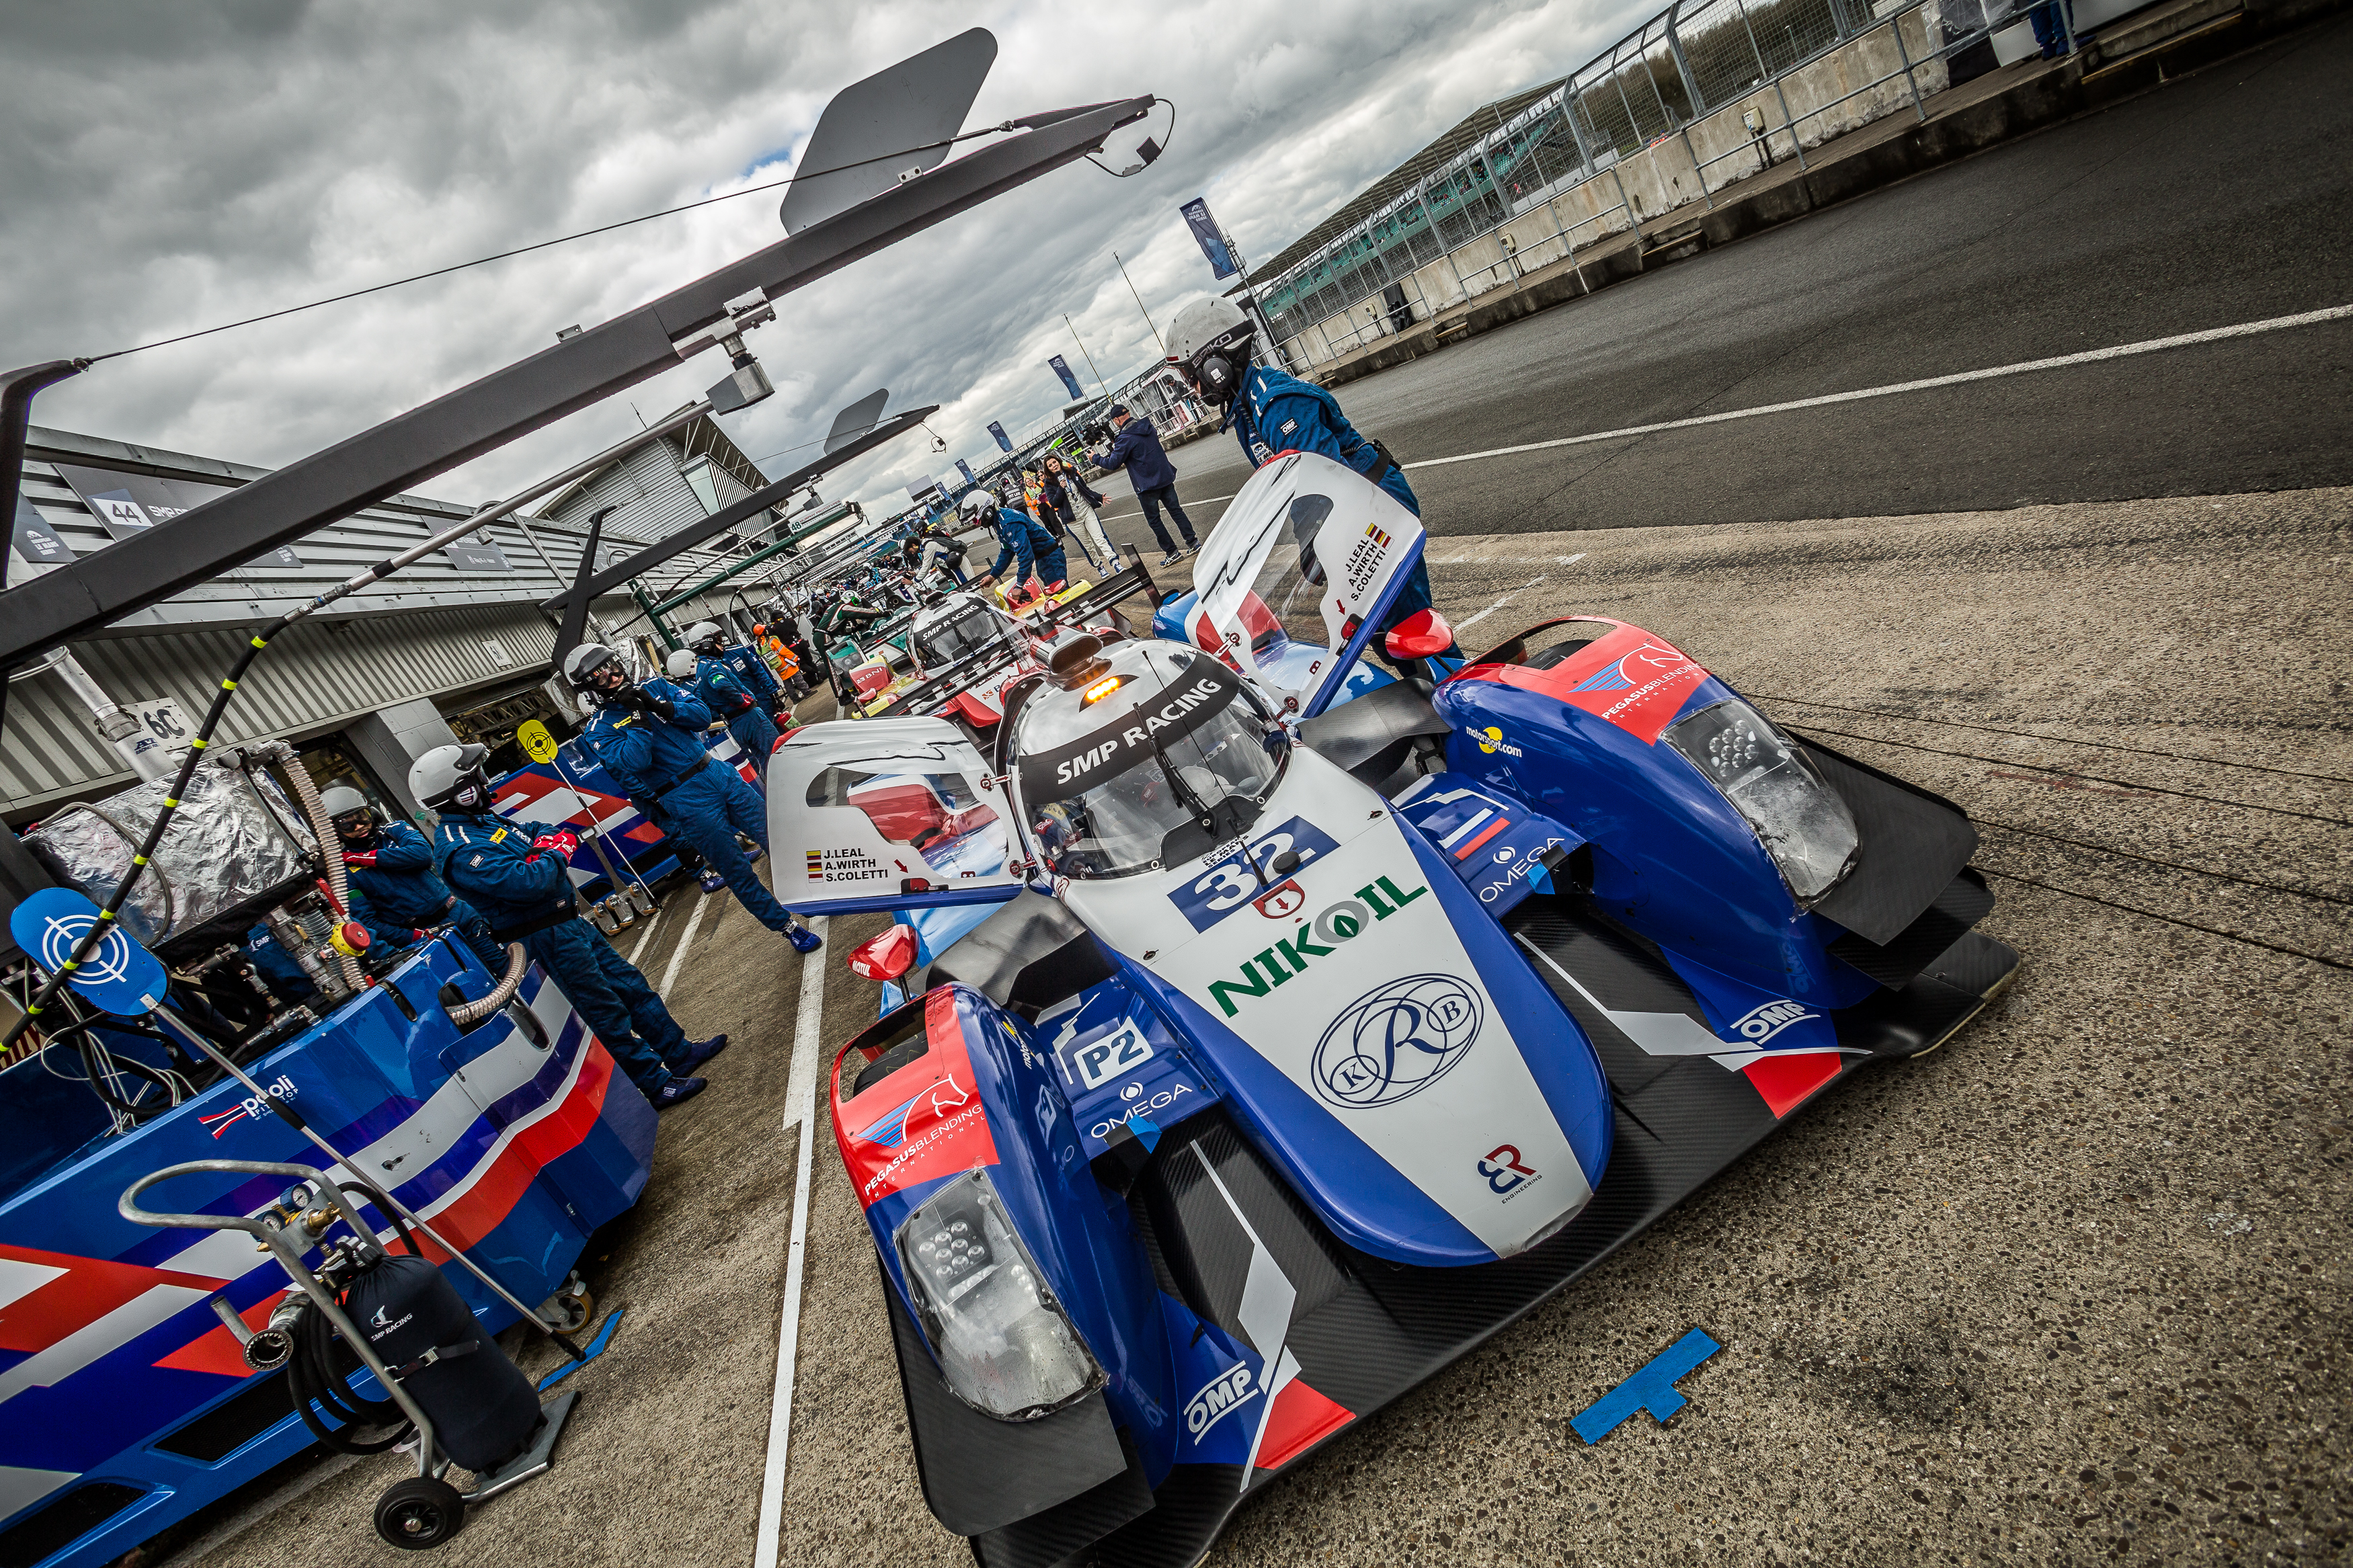 Car # 32 / SMP RACING / RUS / BR 01 - Nissan / Stefano Coletti (MCO) / Julian Leal Covelli (COL) / Andreas Wirth (DEU) - ELMS 4 Hours of Silverstone  - Silverstone Circuit - Towcester, Northamptonshire - UK